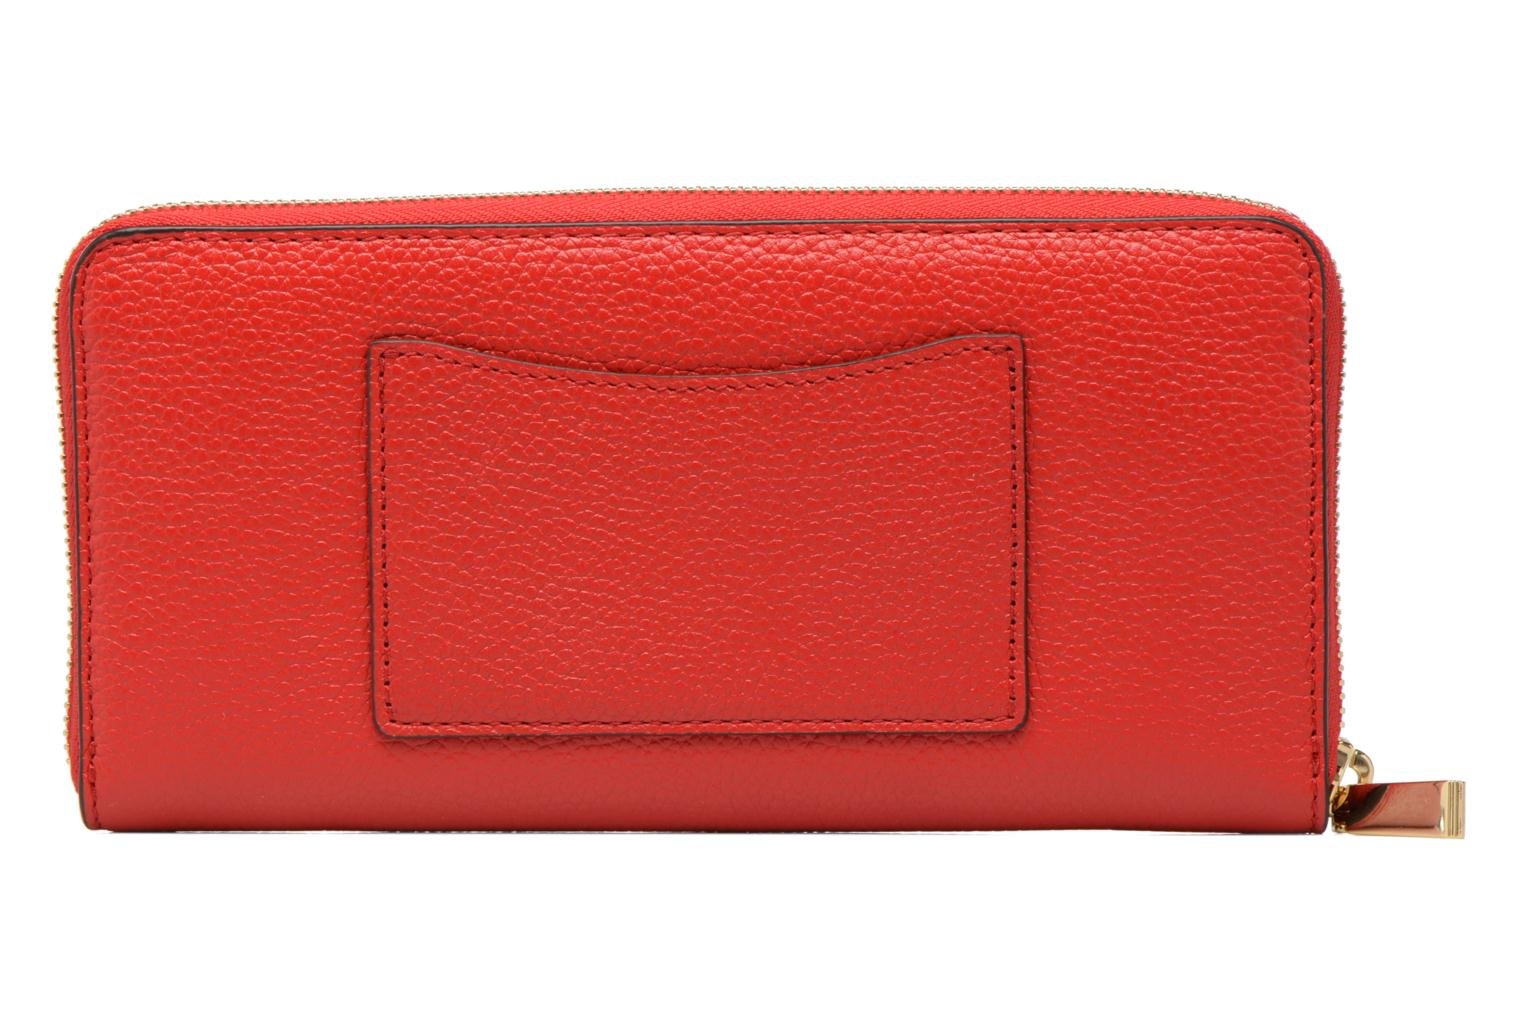 Mercer Pocket ZA Continental 204 Bright red